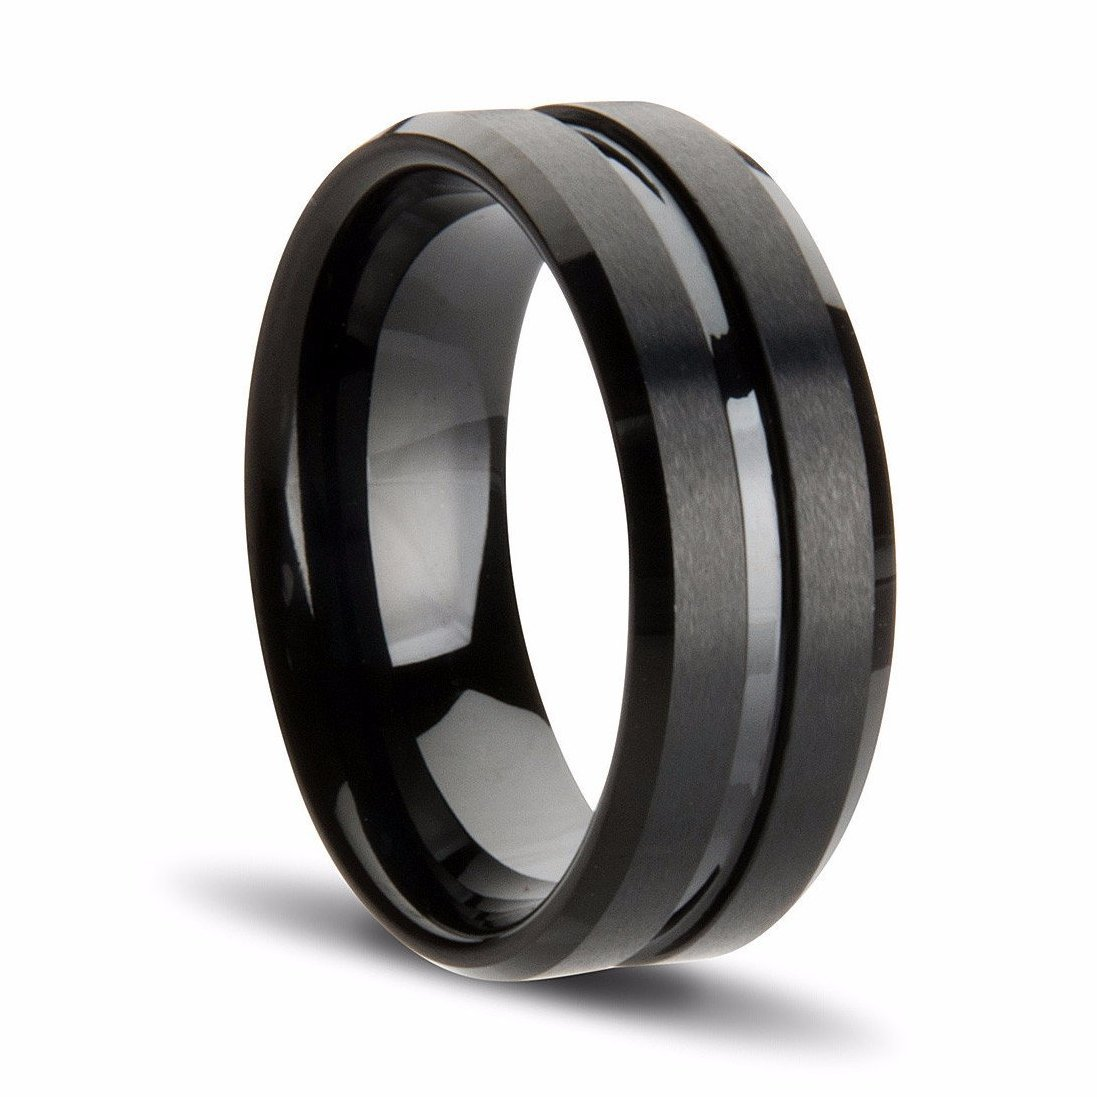 bands black ring plated recessed photo products car wholesale race with wedding rings stripe amazing ion band inner red diagonal and beveled w tungsten edges